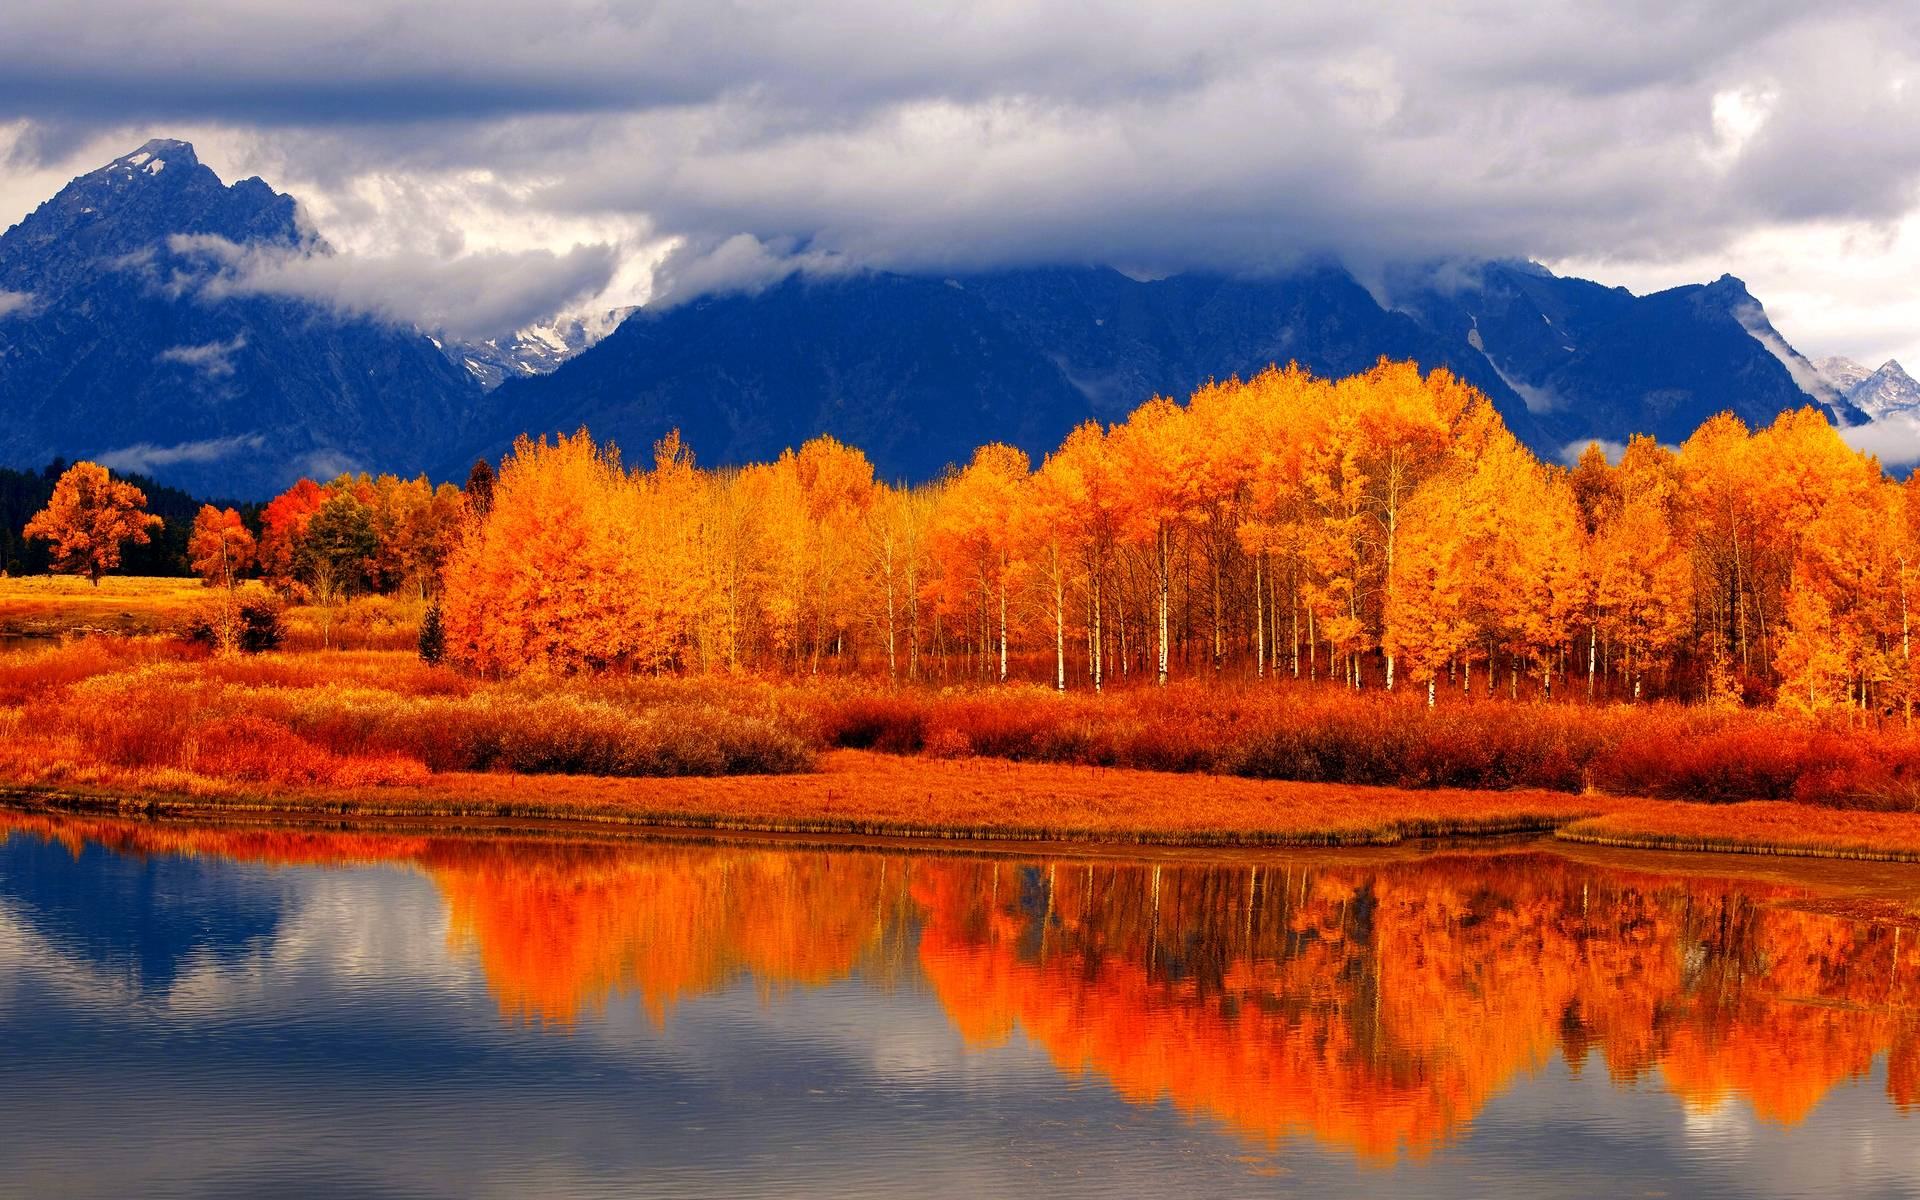 landscape autumn hd wallpaper - photo #1